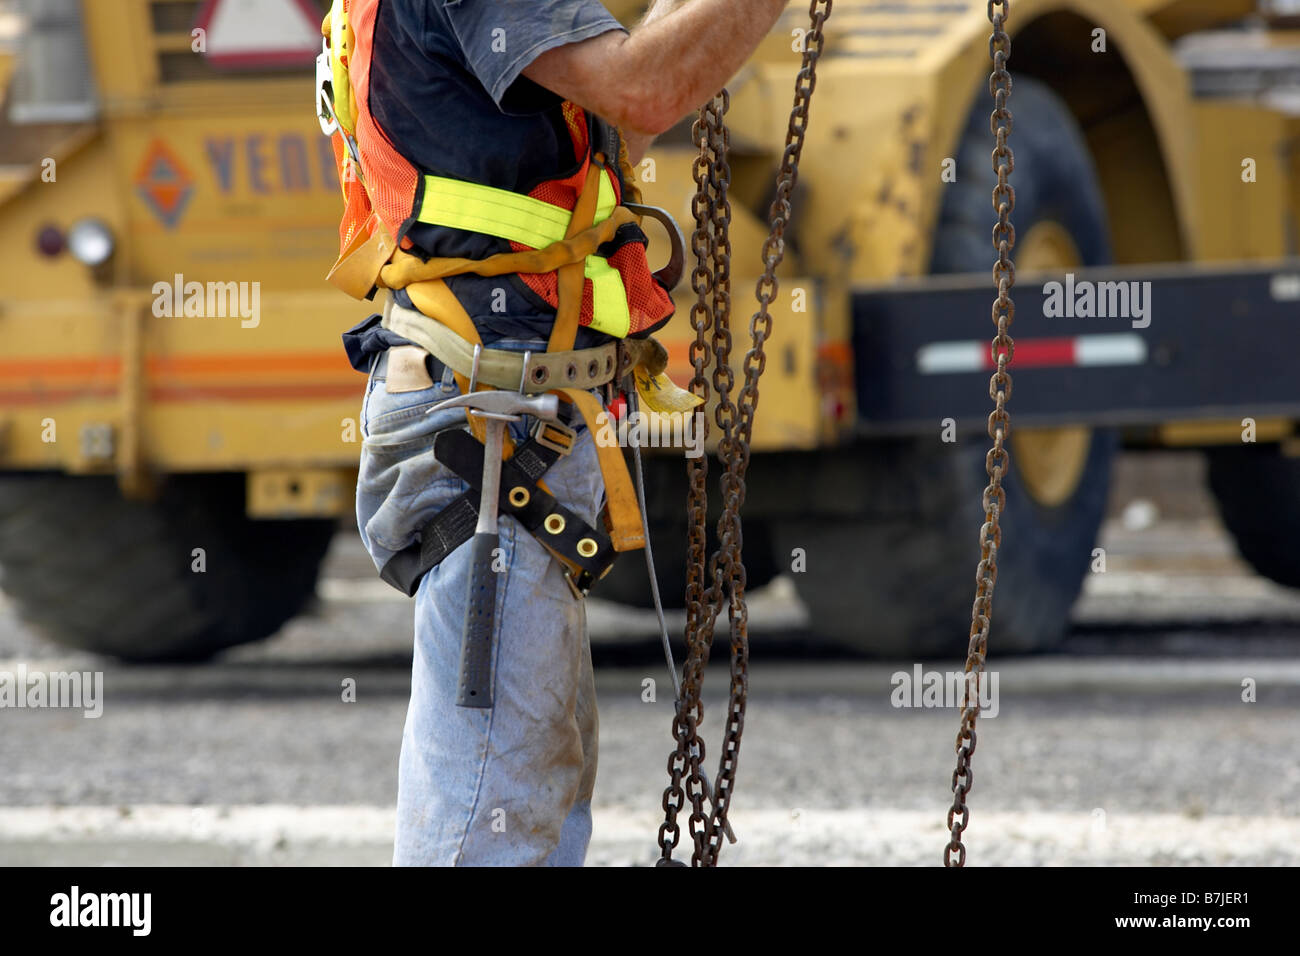 construction worker in harness and tool belt adjusting chains canada B7JER1 construction worker in harness and tool belt adjusting chains stock